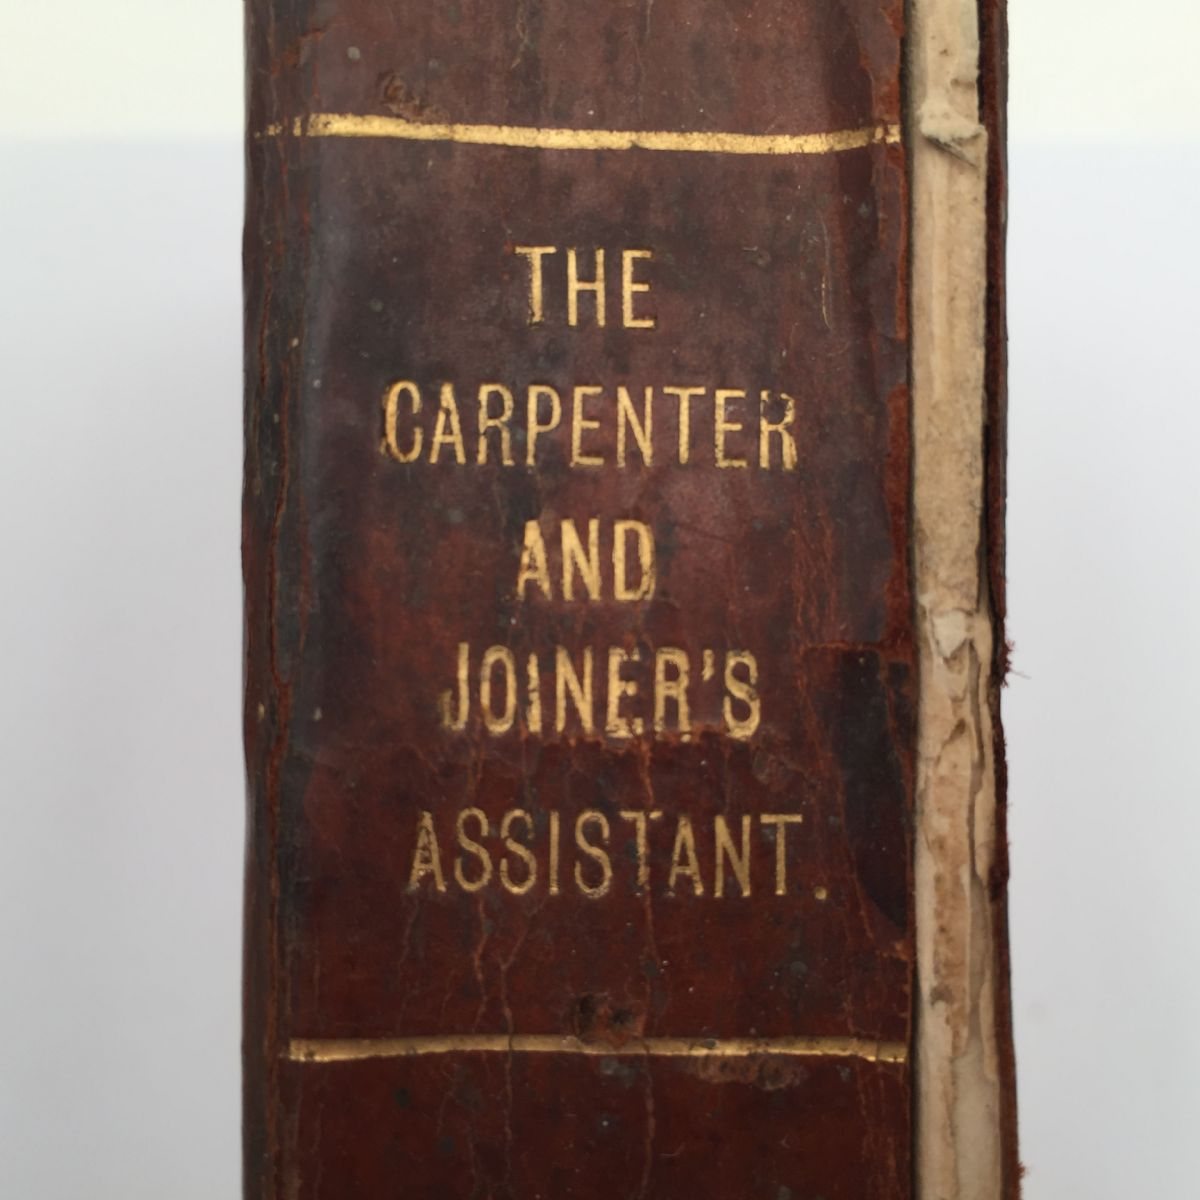 The Carpenter and Joiner's Assistant